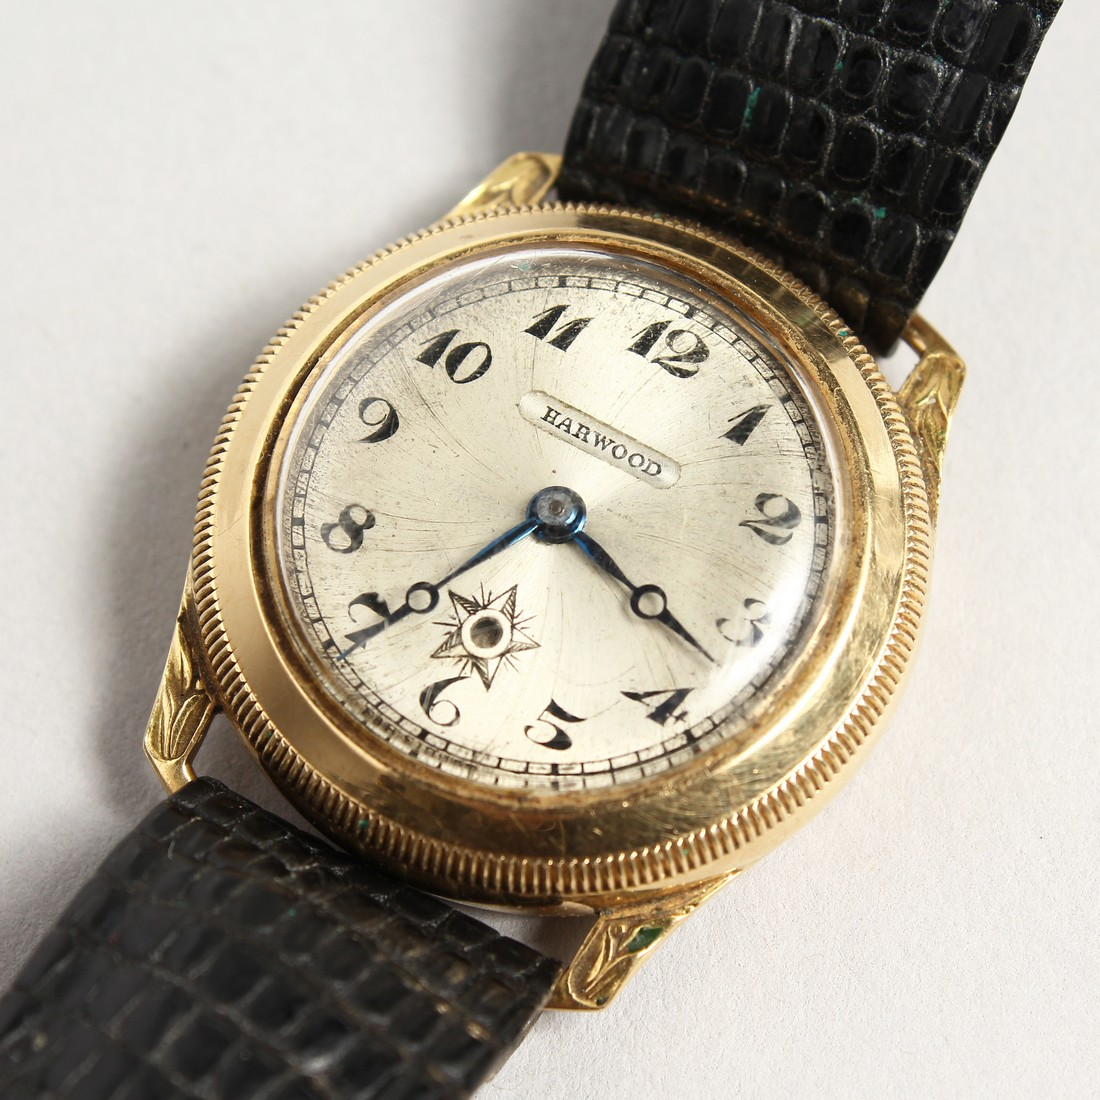 A HARWOOD GOLD WRISTWATCH with leather strap.